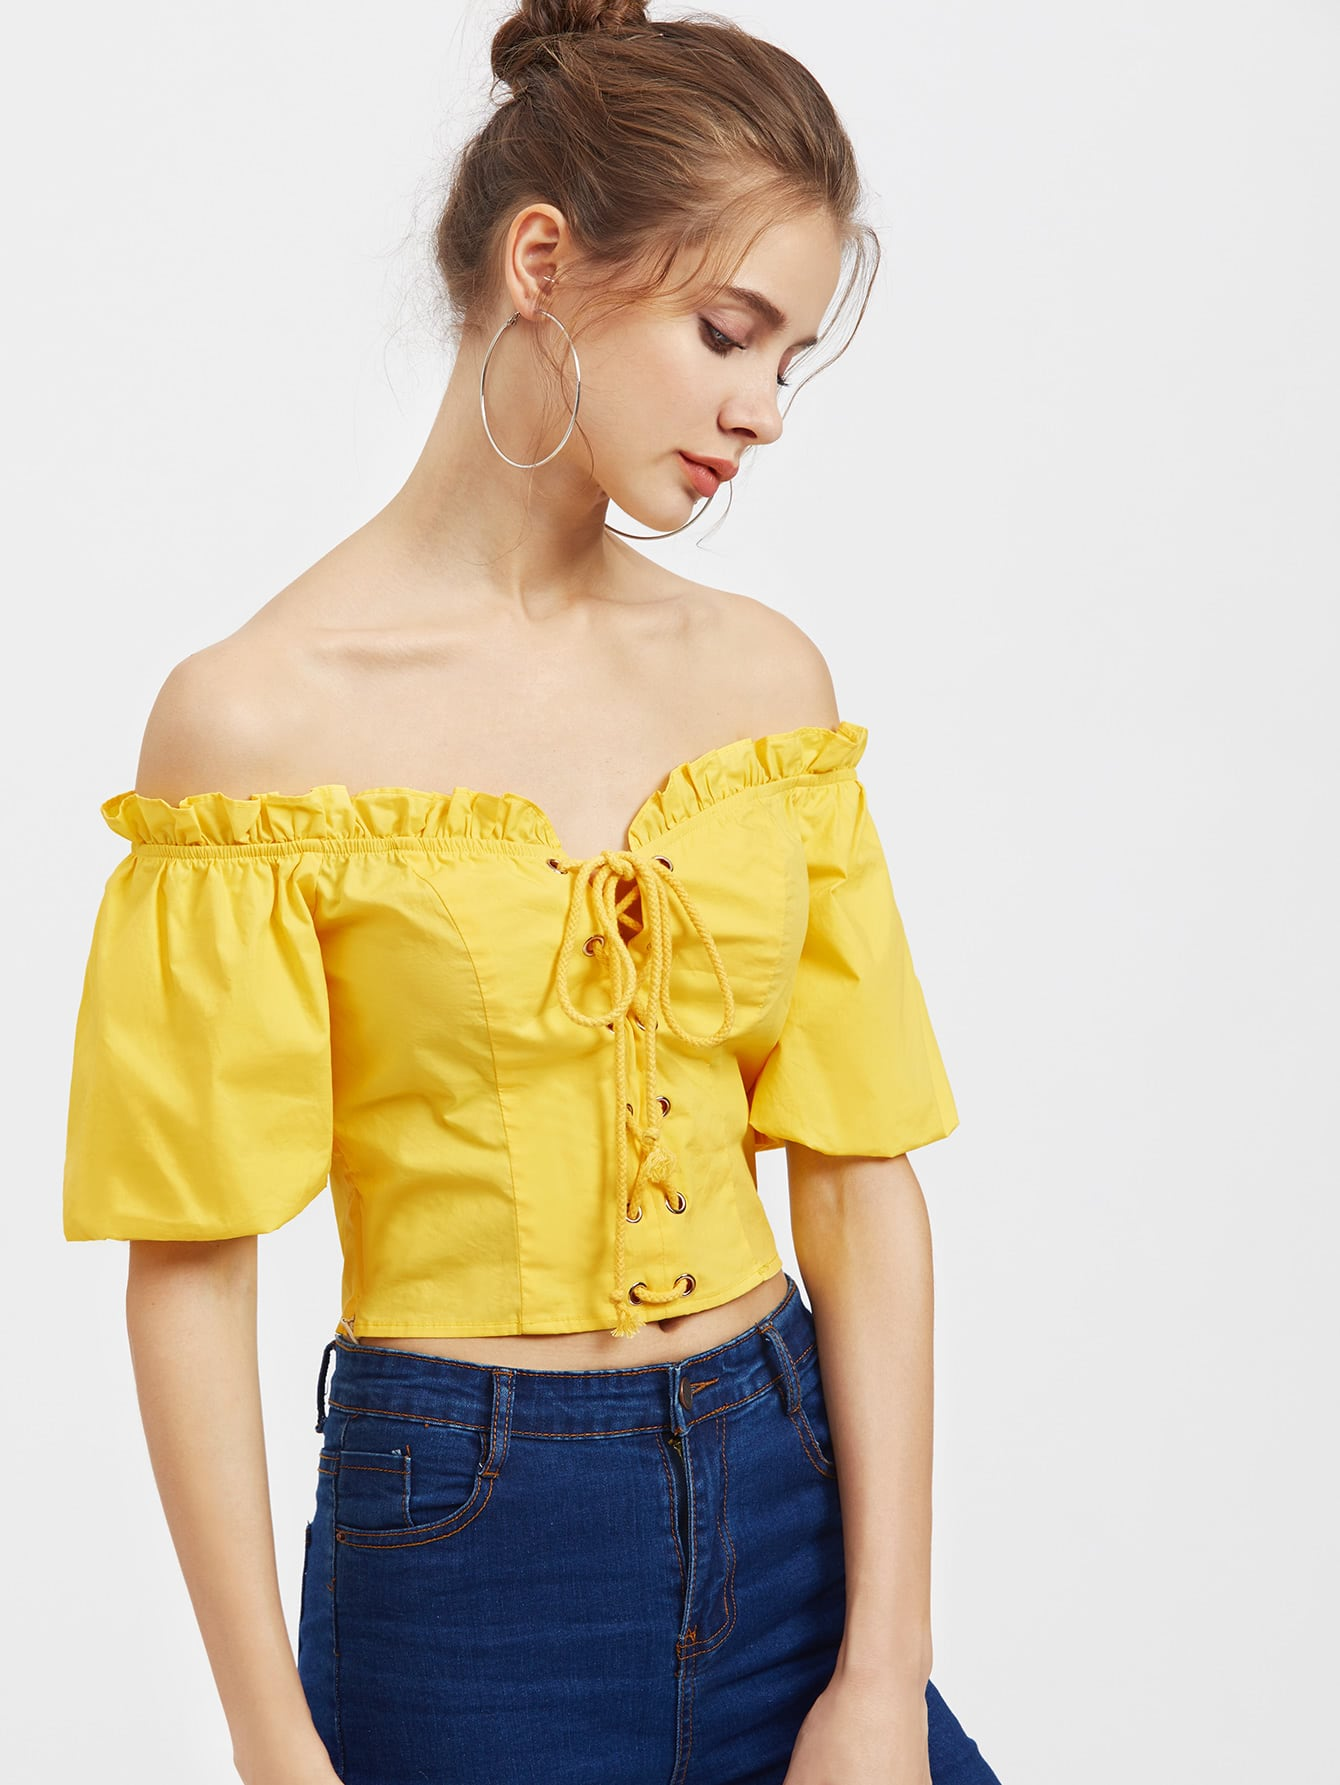 Bardot Neck Bell Sleeve Lace Up Corset Top blouse170427709